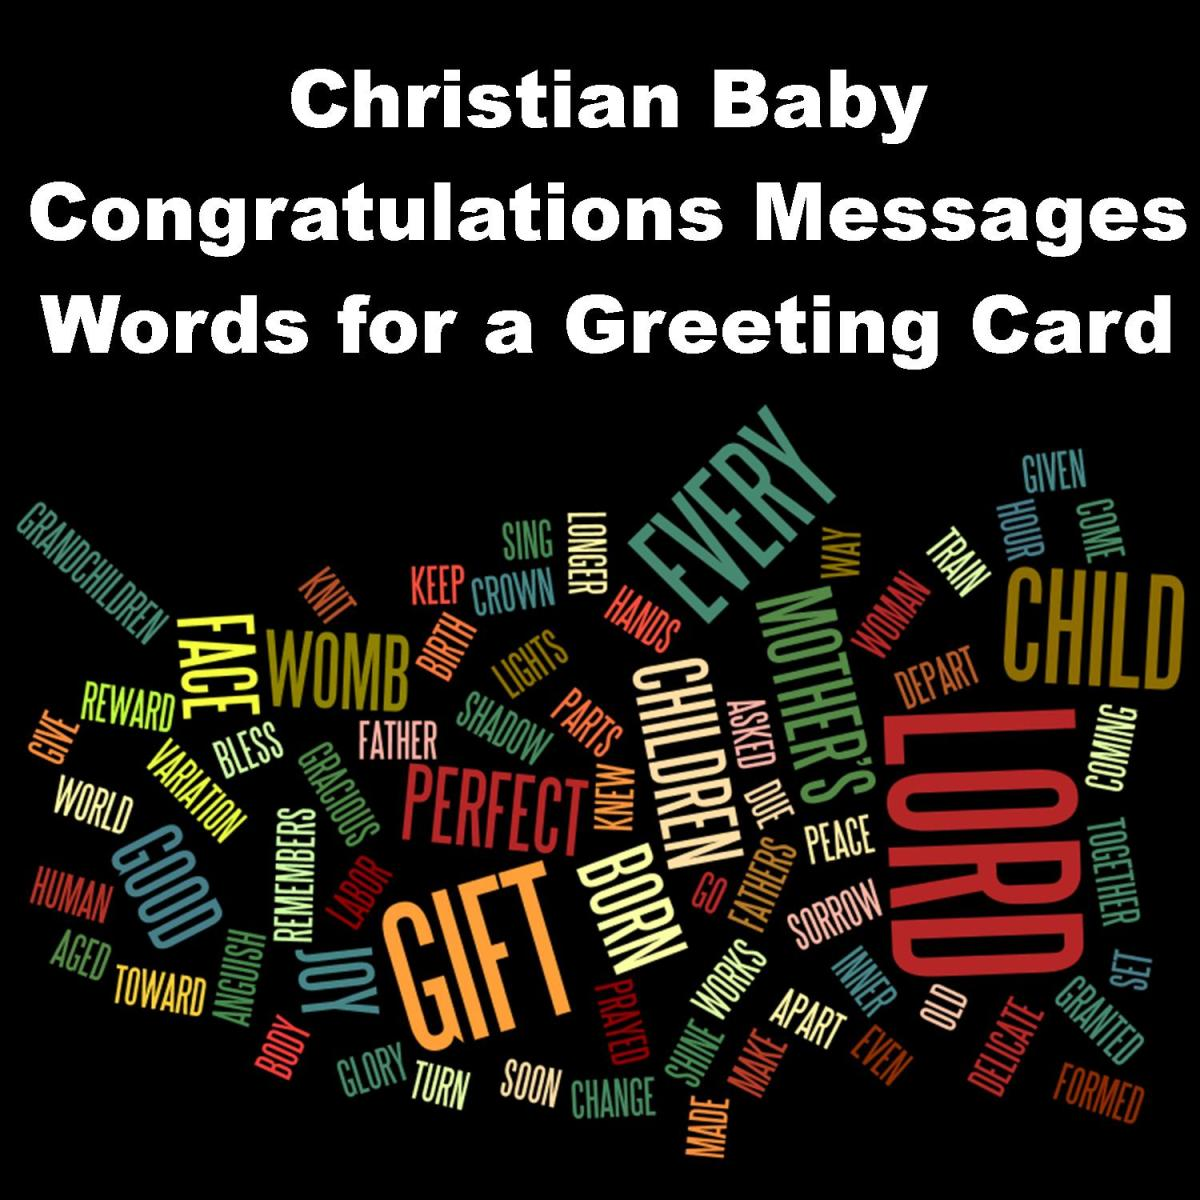 This is a word cloud created from the Bible verses listed below. Use these to help inspire baby congratulations wishes from you.